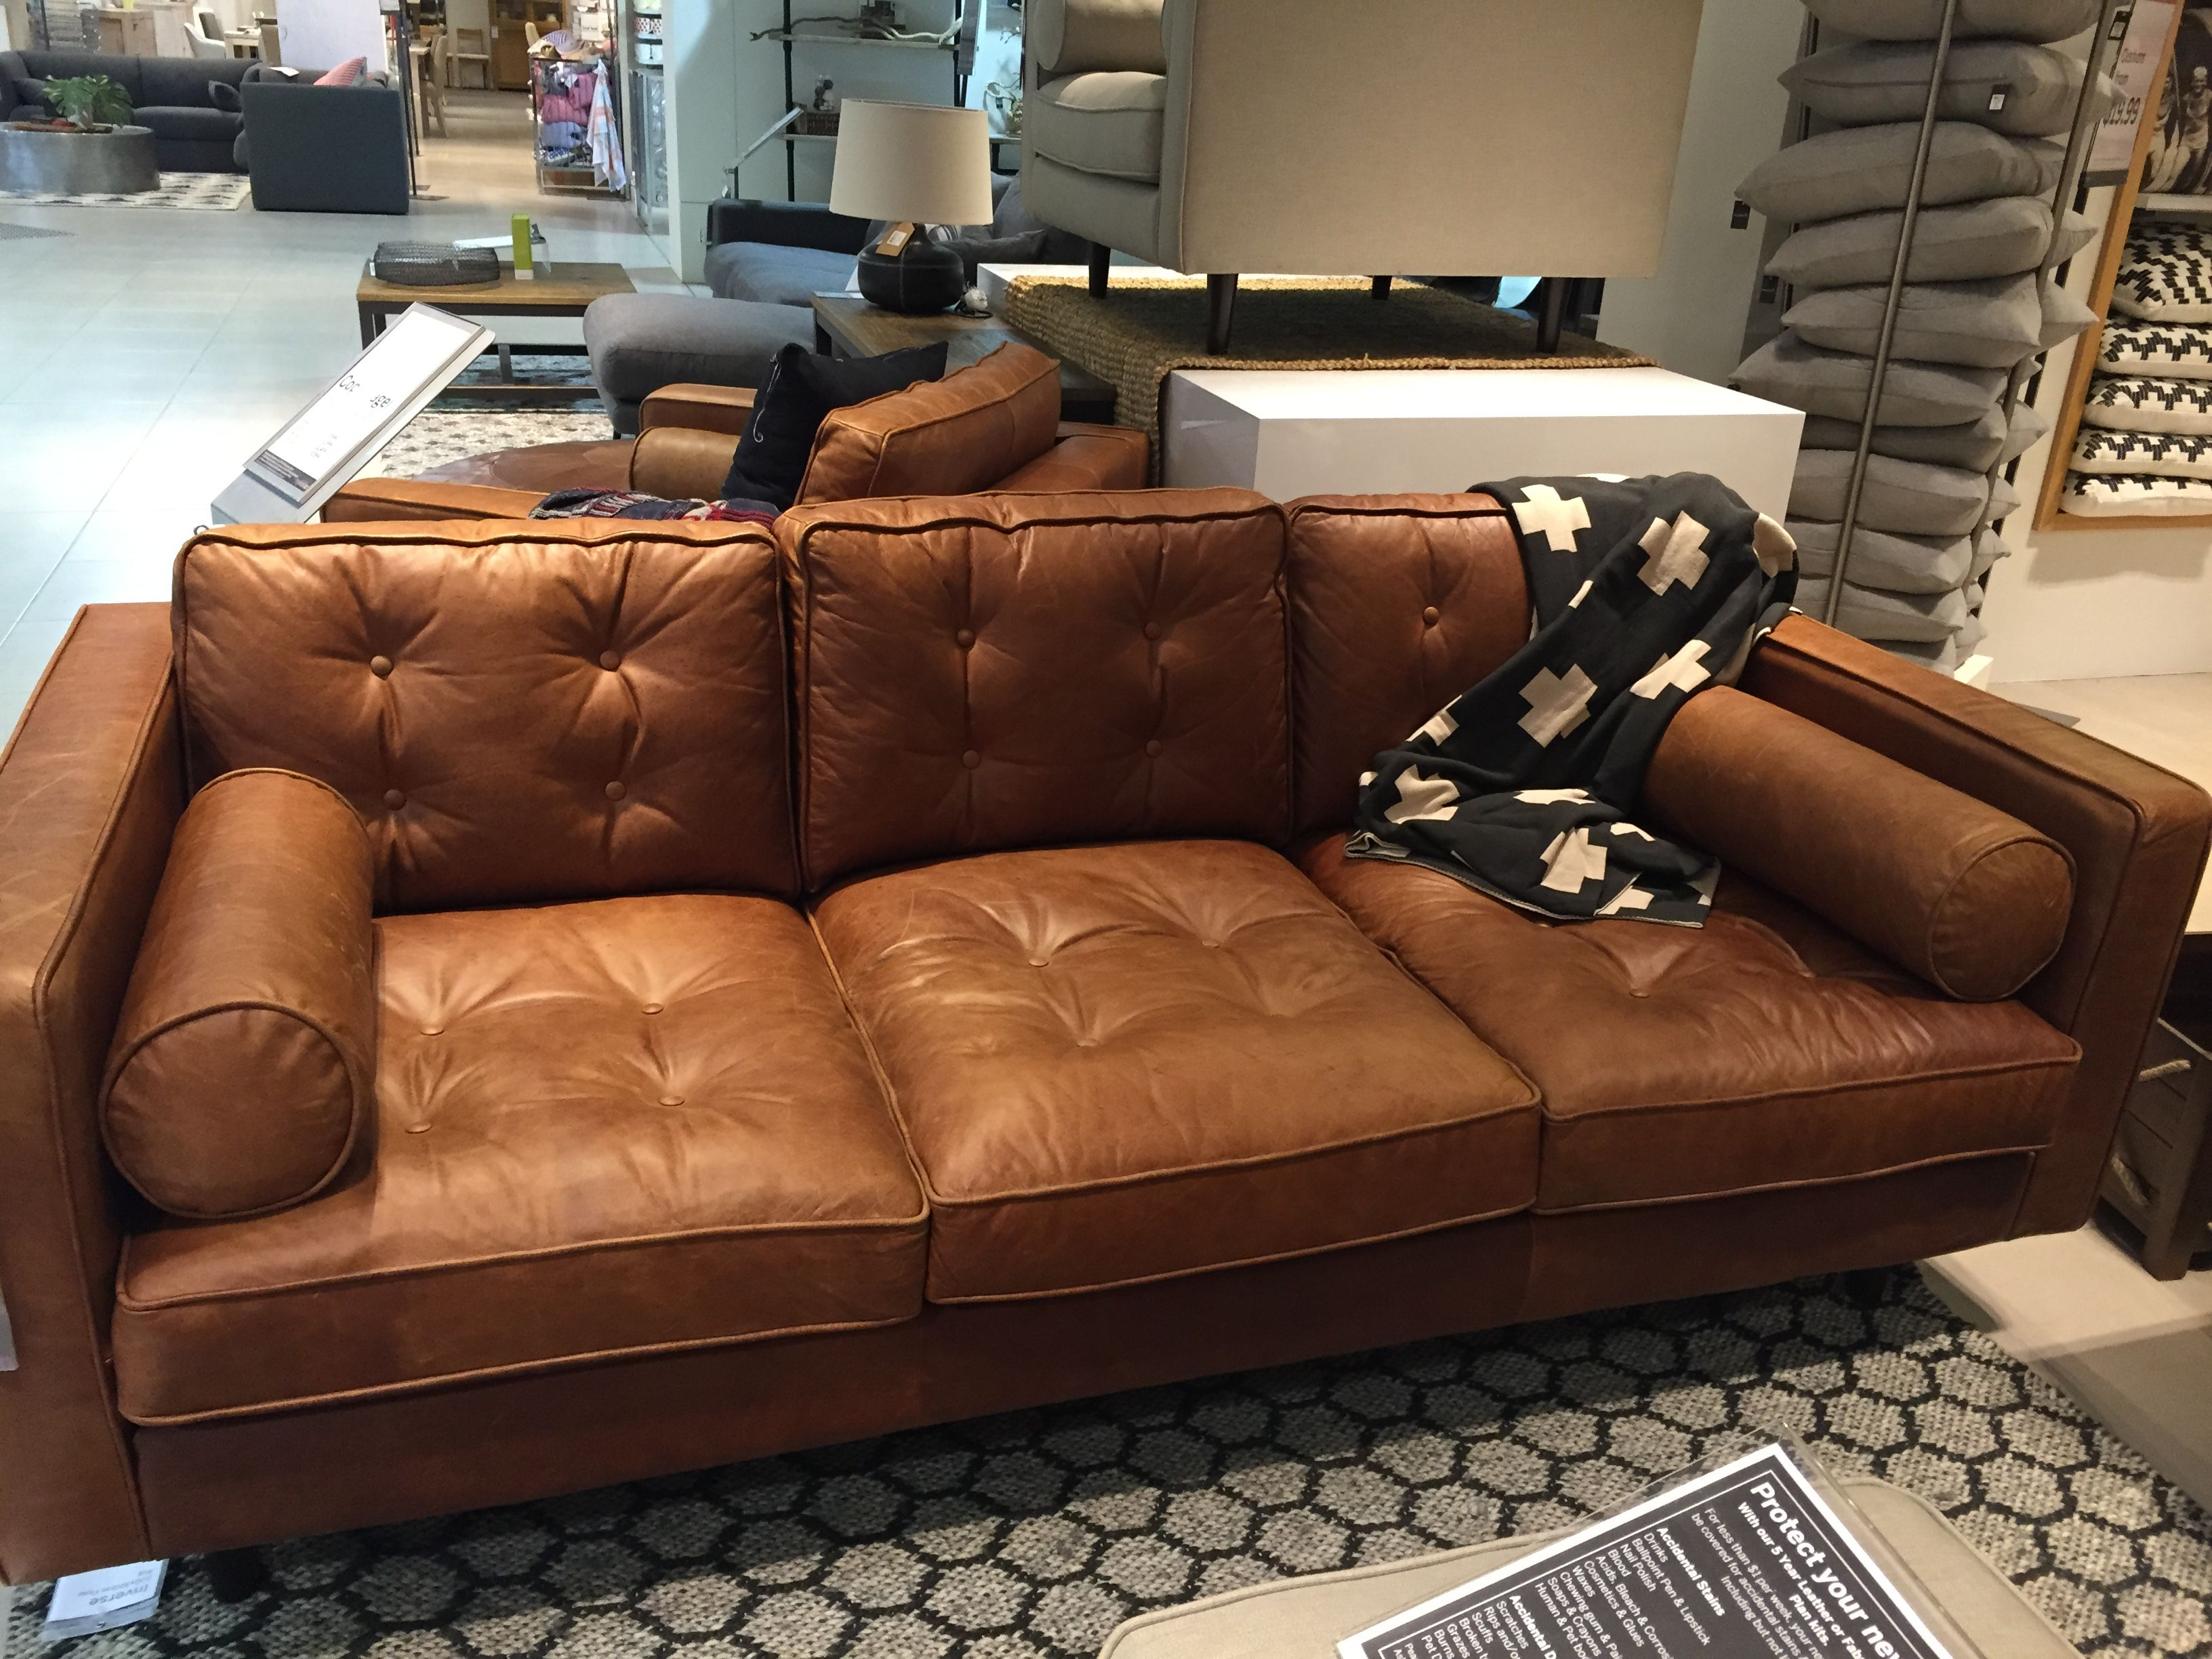 Biro Off Leather Couch Patio Ideas